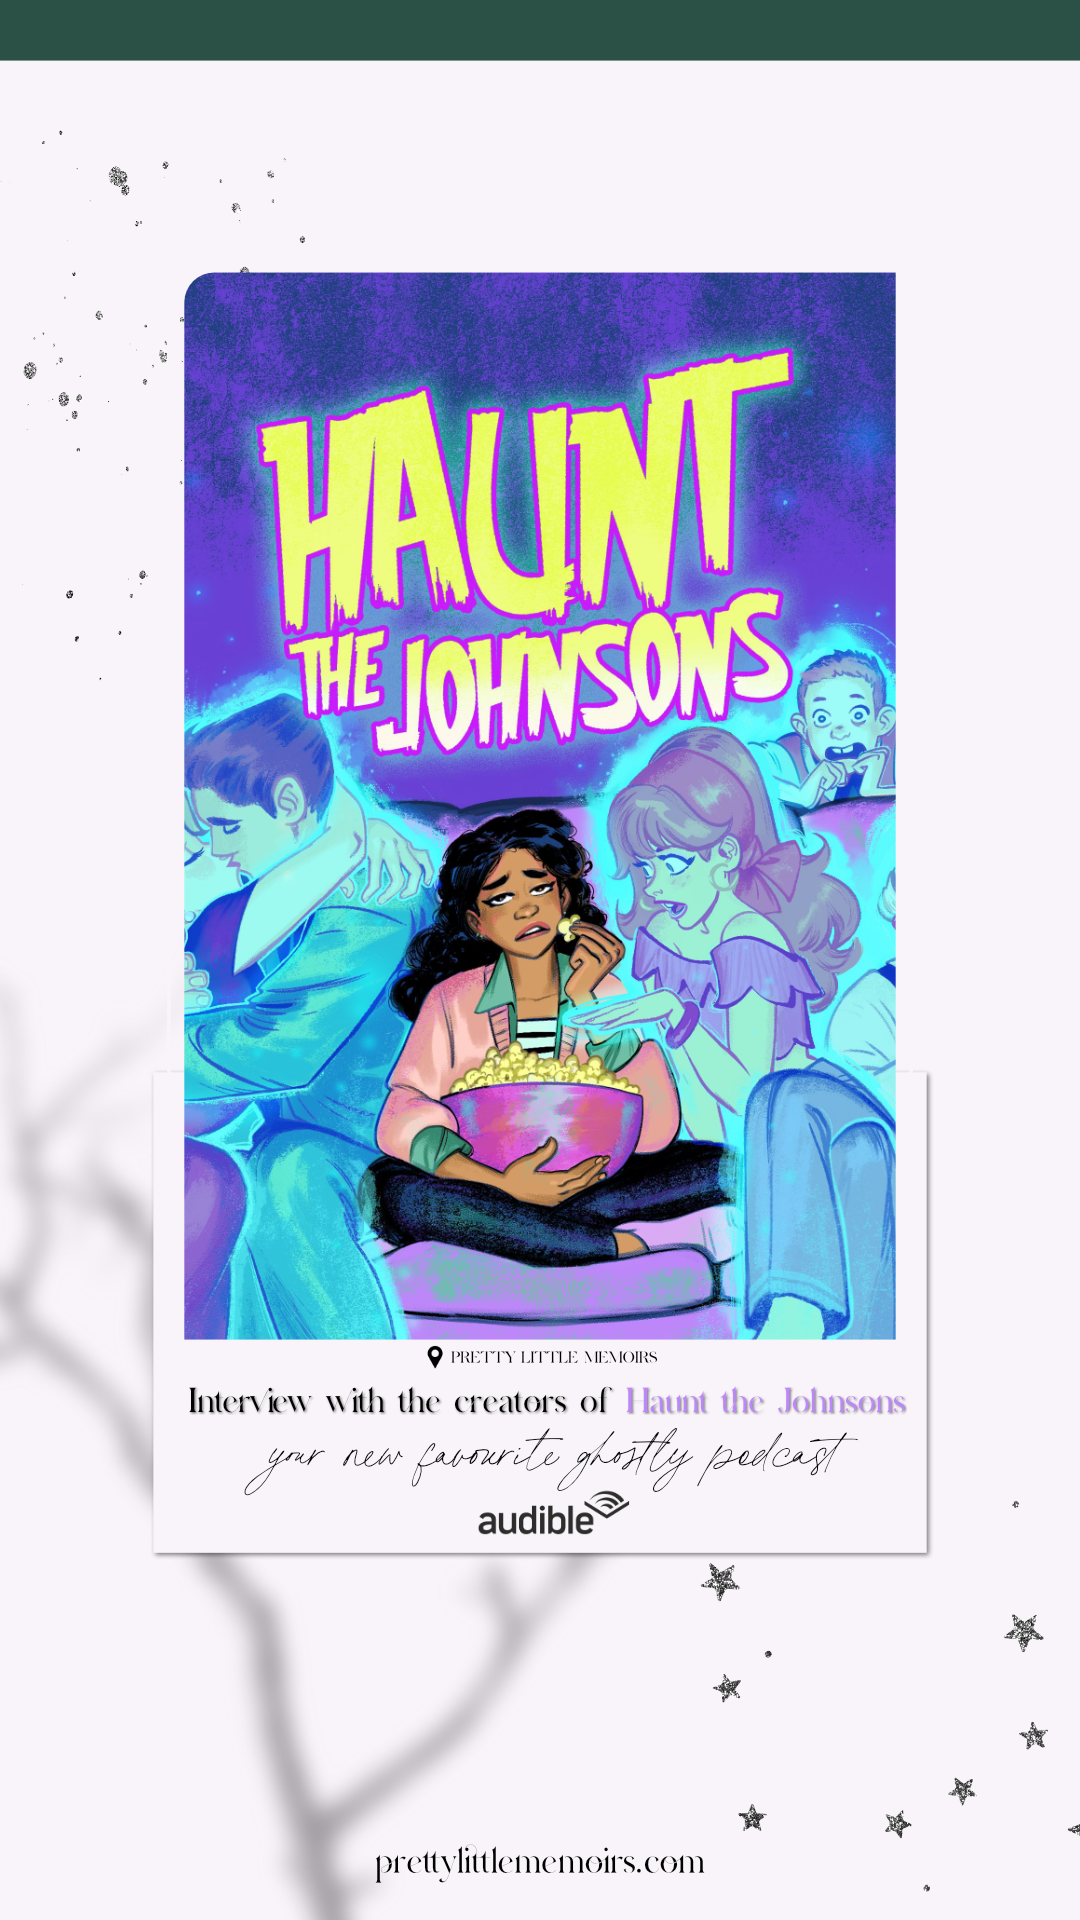 Interview with the creators of Haunt the Johnsons, your new favourite ghostly podcast